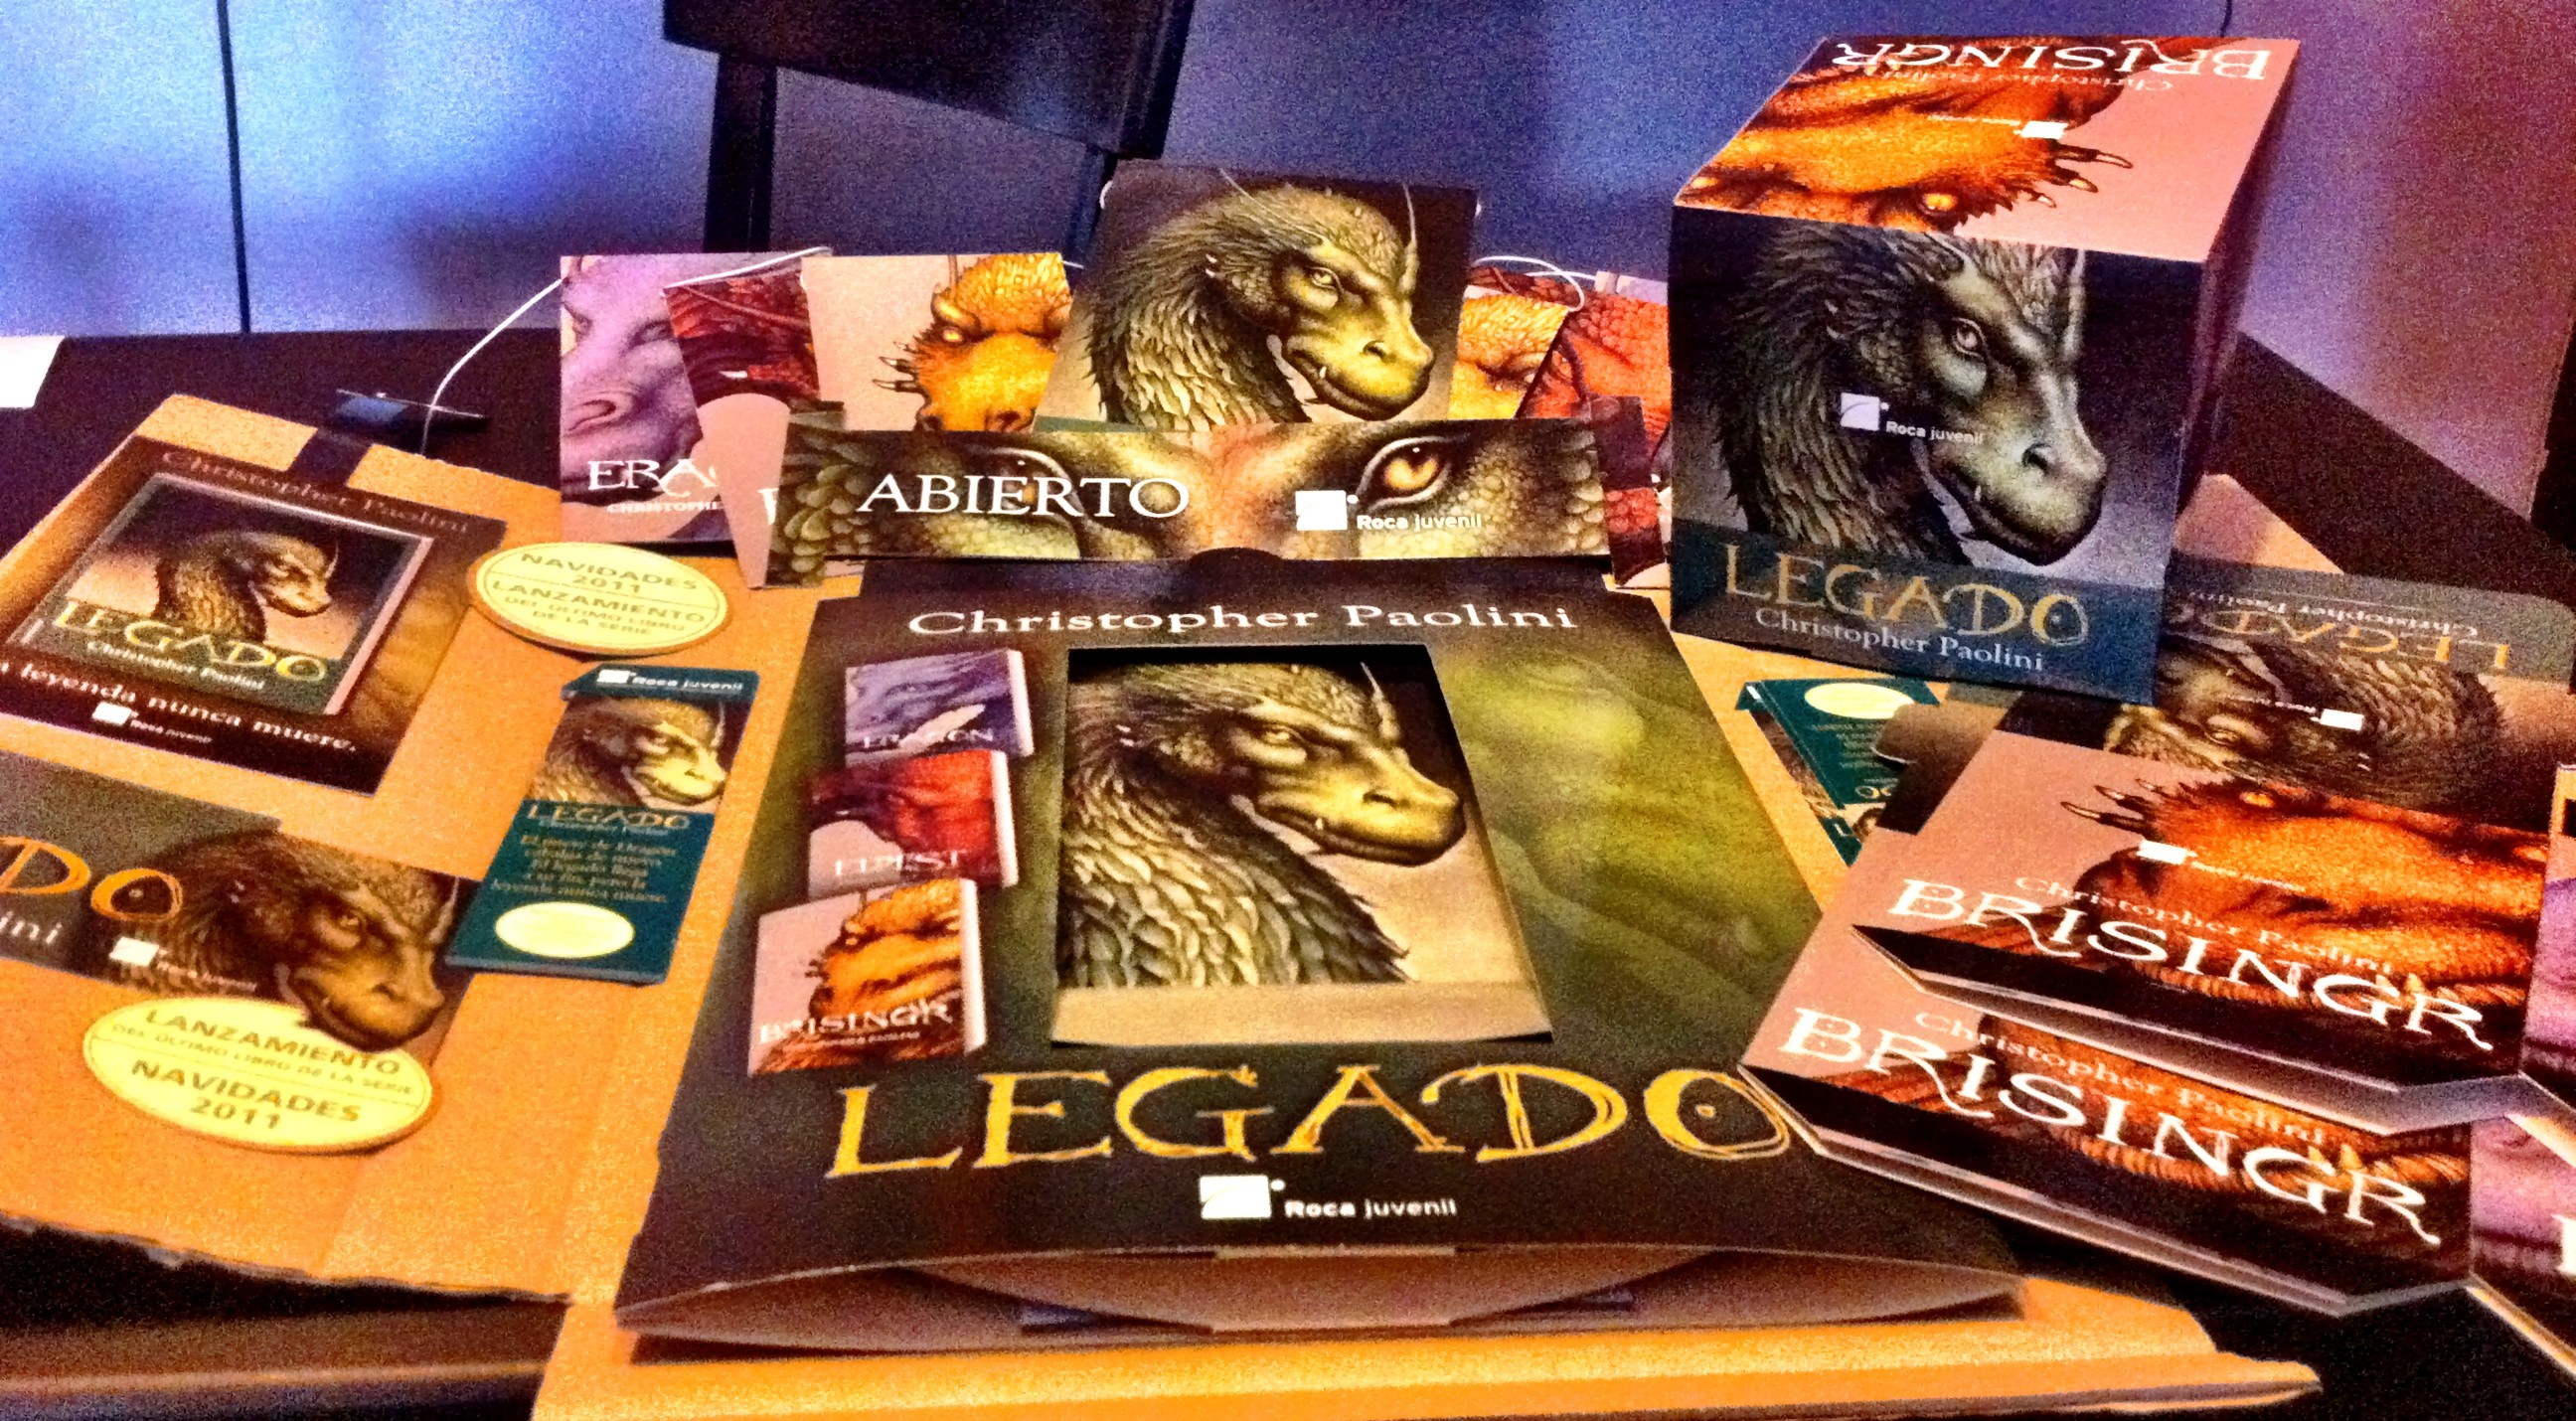 Kit de libreras de Legado